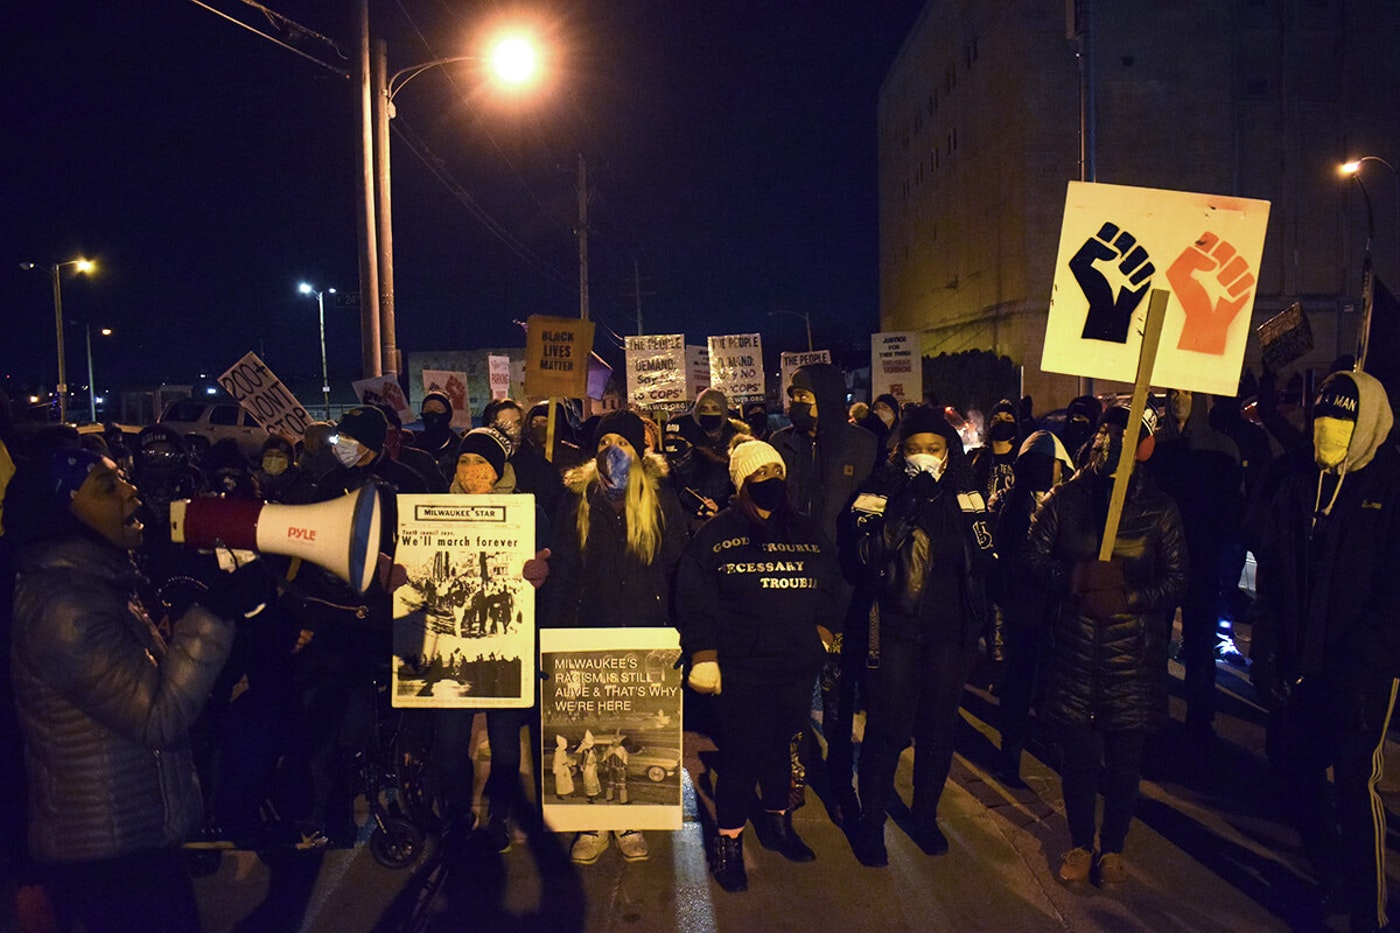 The Peoples Revolution, a Milwaukee protest group, on Monday evening begins its 200th consecutive day of marching after the murder of George Floyd by Minneapolis police. (Photo by Jonathon Sadowski)